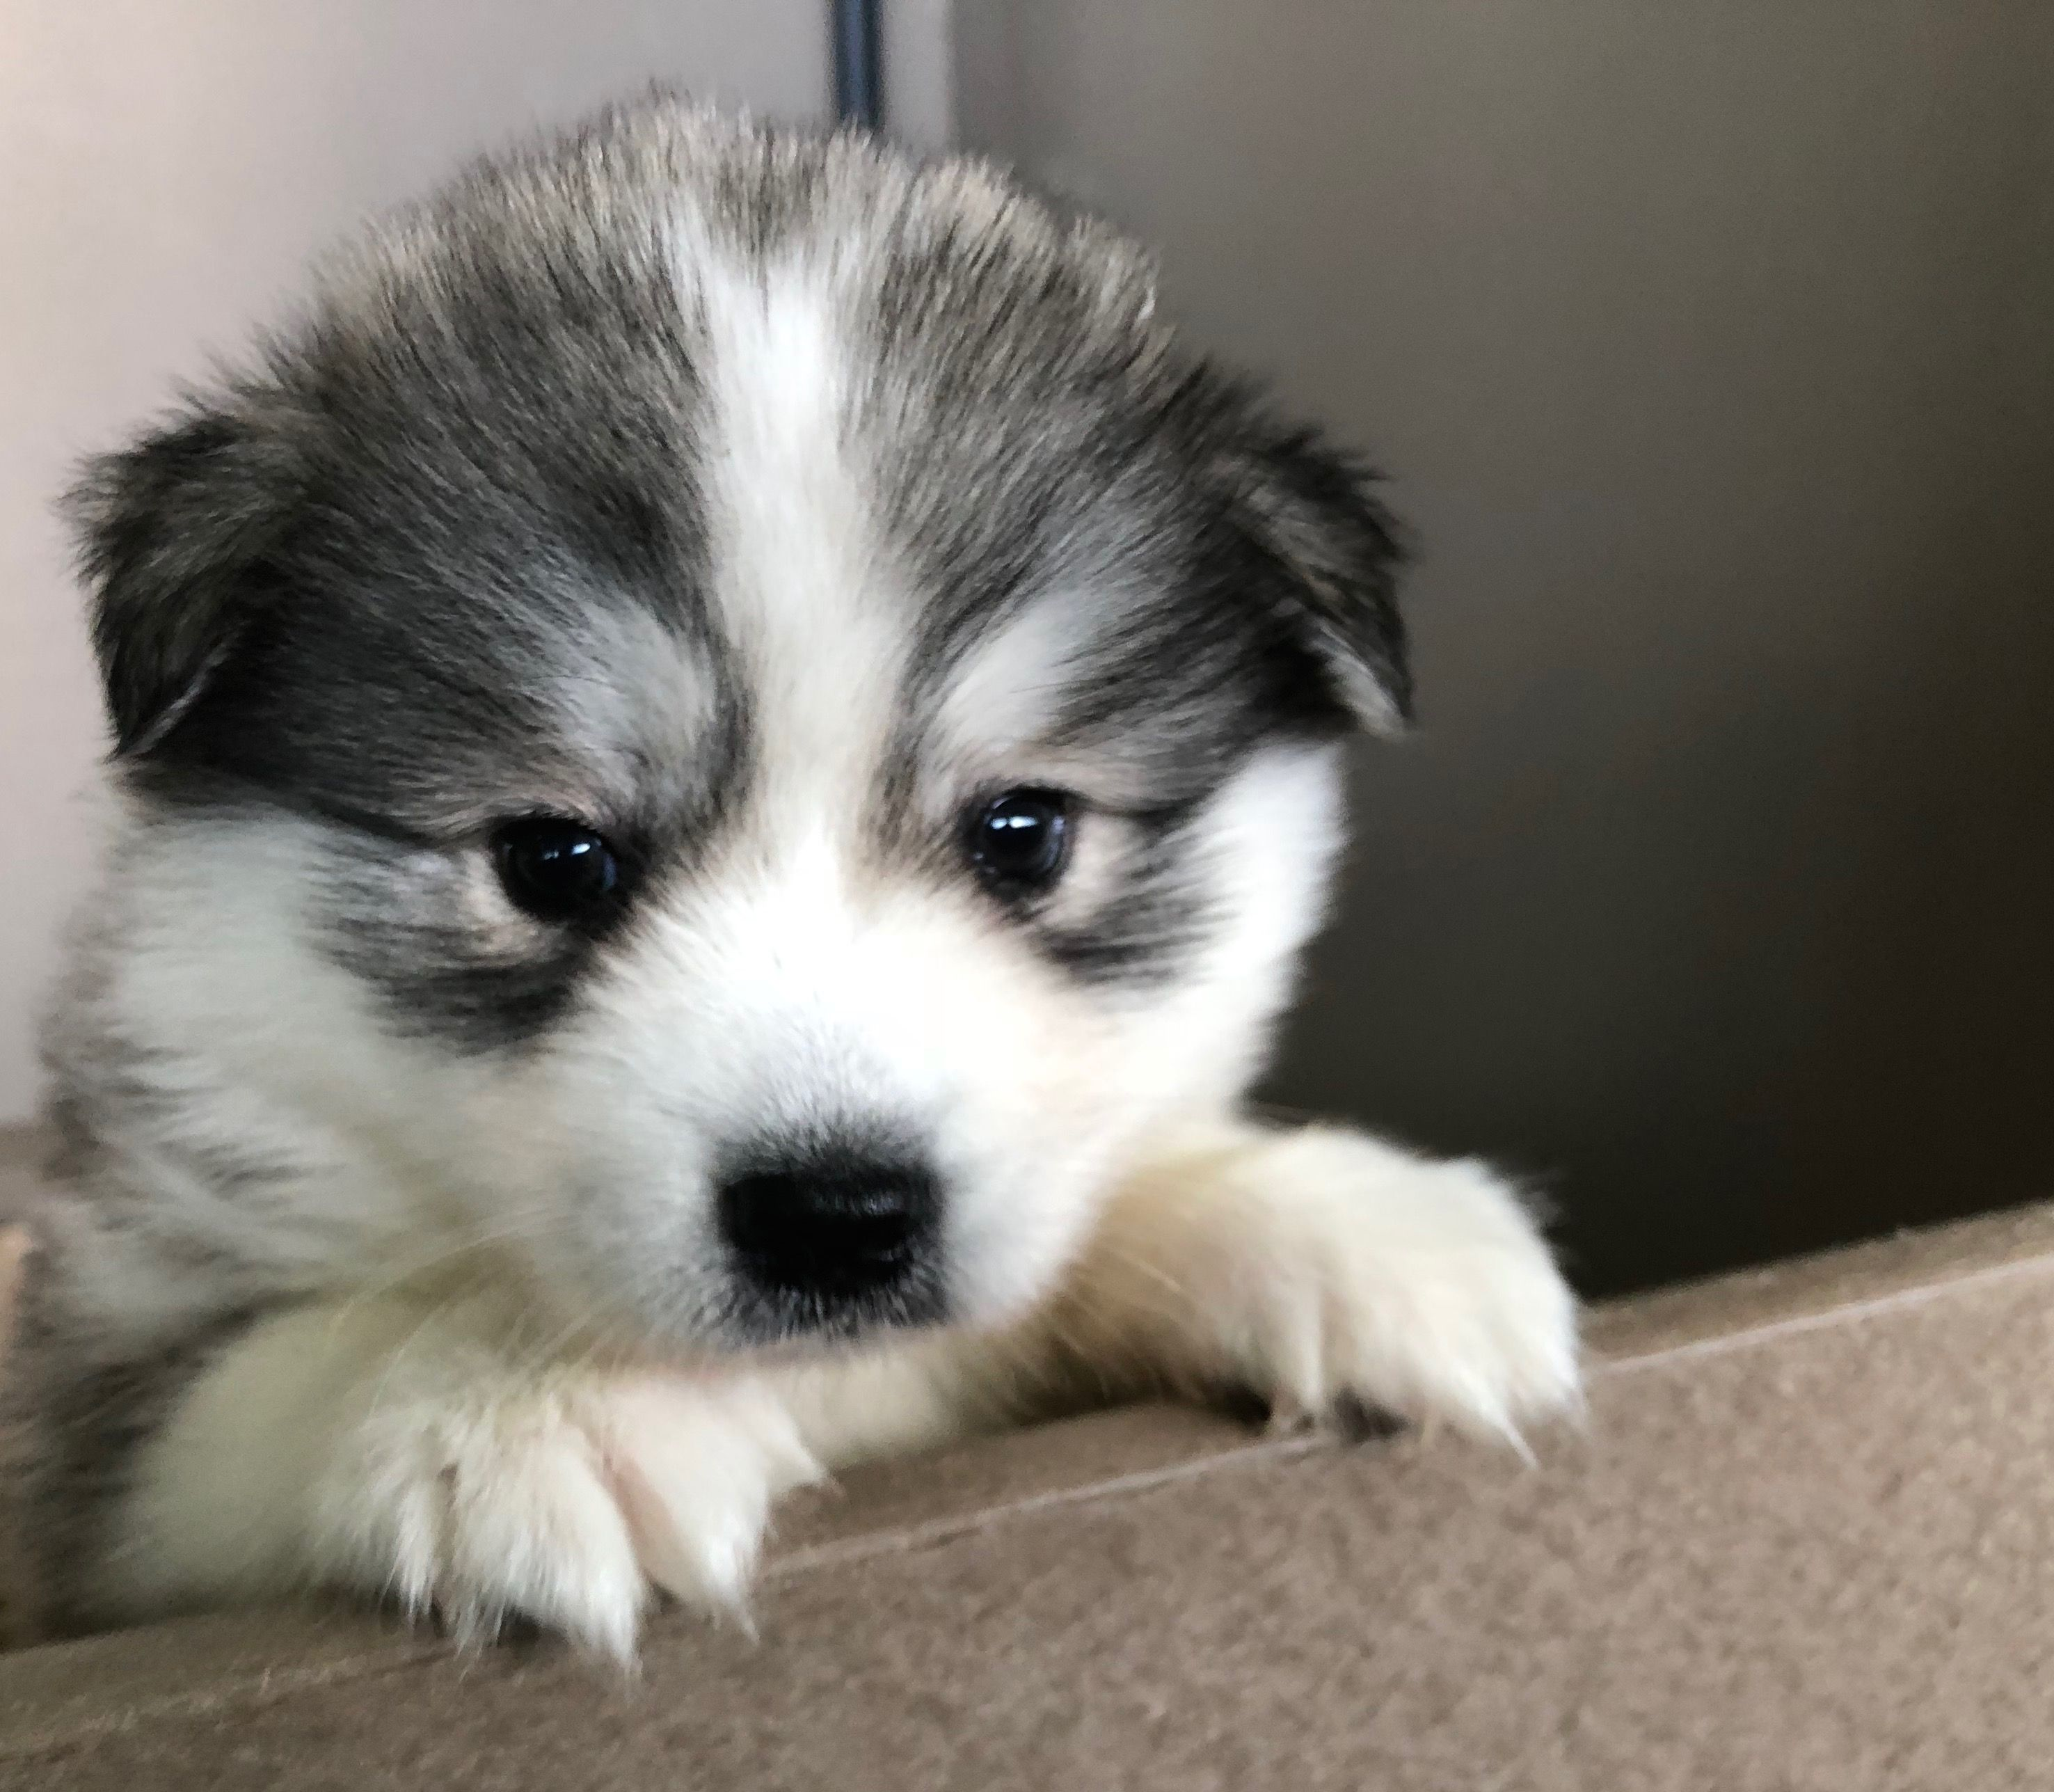 Dogs And Puppies For Sale Petland Novi Michigan Puppy Store Puppies For Sale Puppy Store Dogs